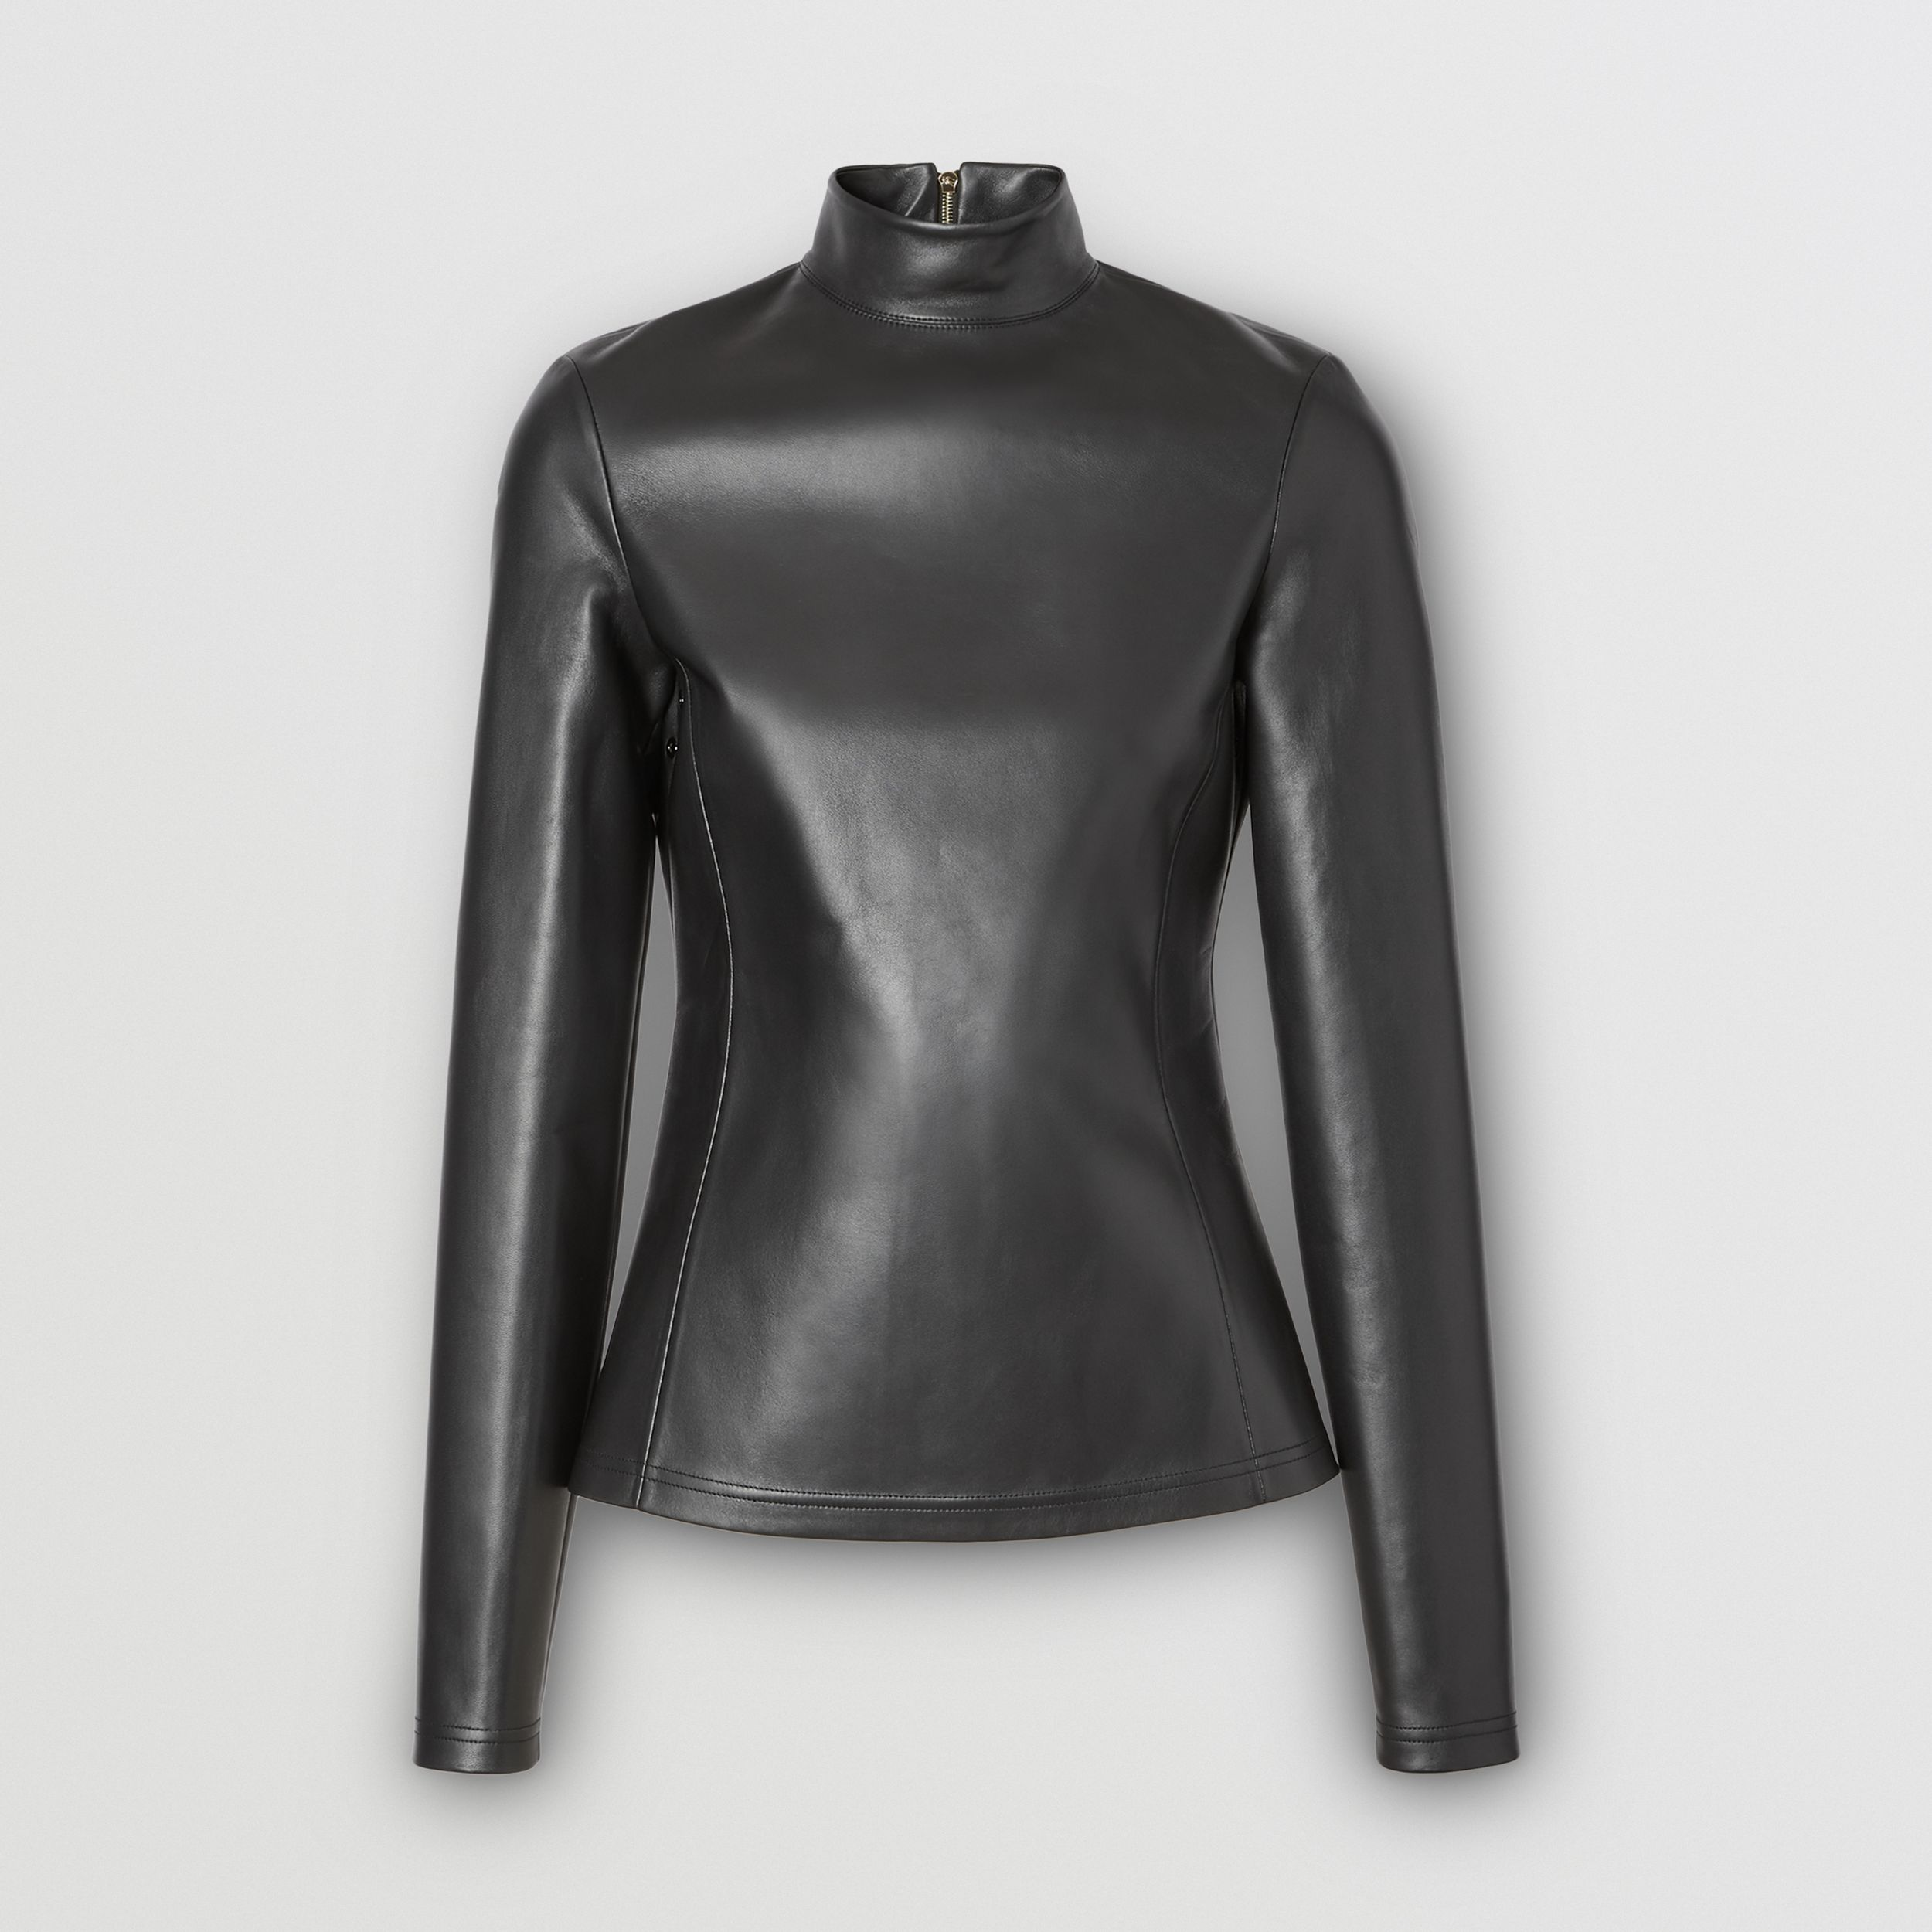 Stretch Lambskin Turtleneck Top in Black - Women | Burberry - 4